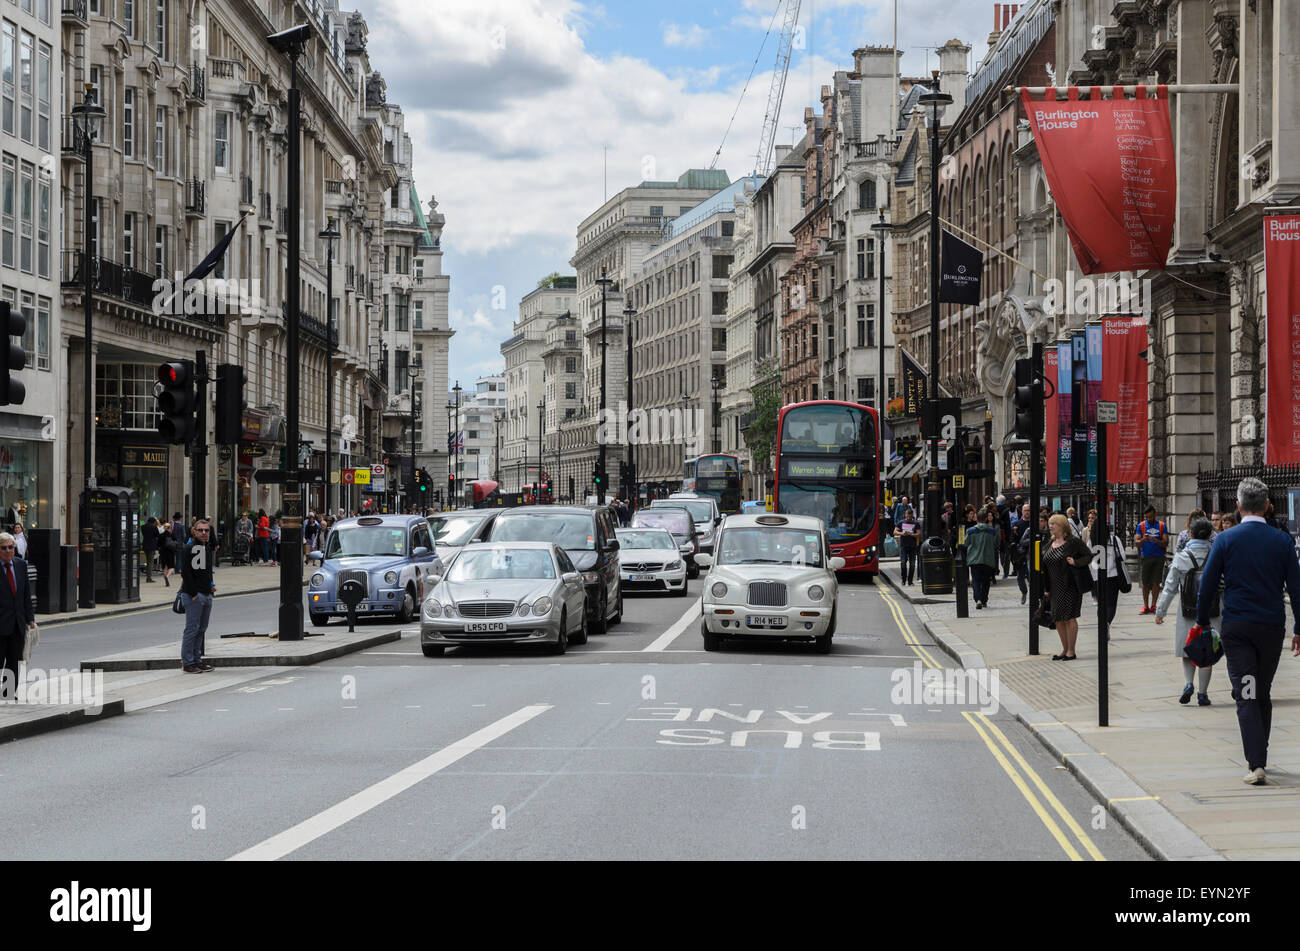 Piccadilly in Central London, England, UK - Stock Image